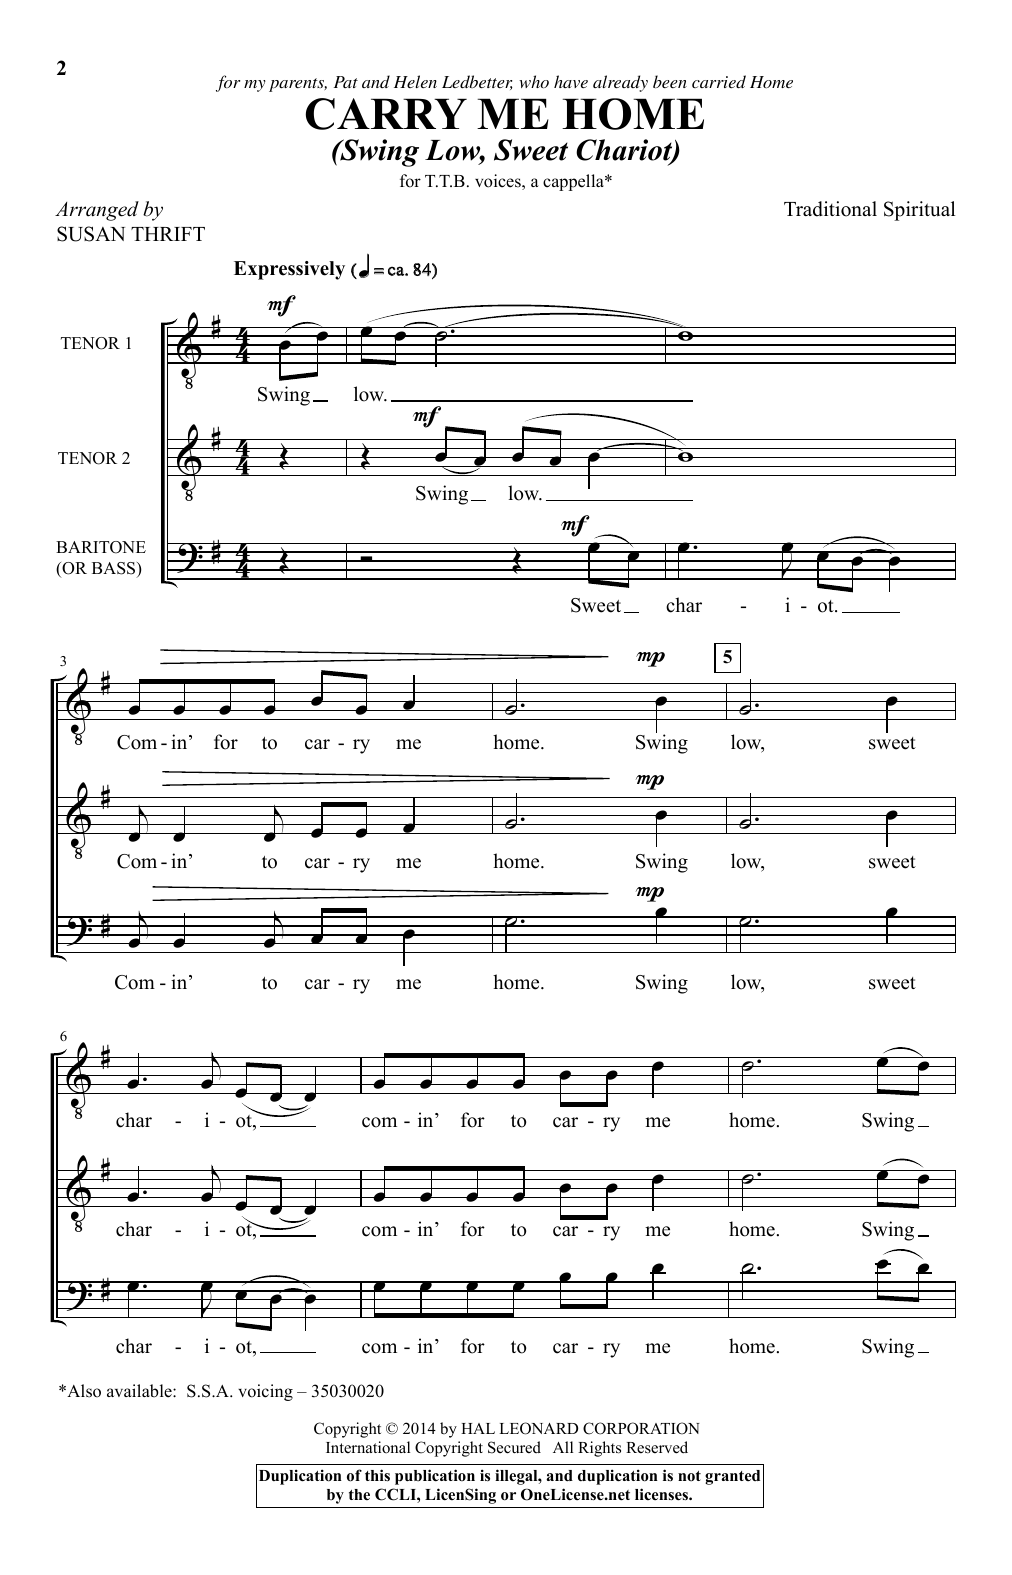 Download African-American Spiritual 'Carry Me Home (Swing Low, Sweet Chariot) (arr. Susan Thrift)' Digital Sheet Music Notes & Chords and start playing in minutes